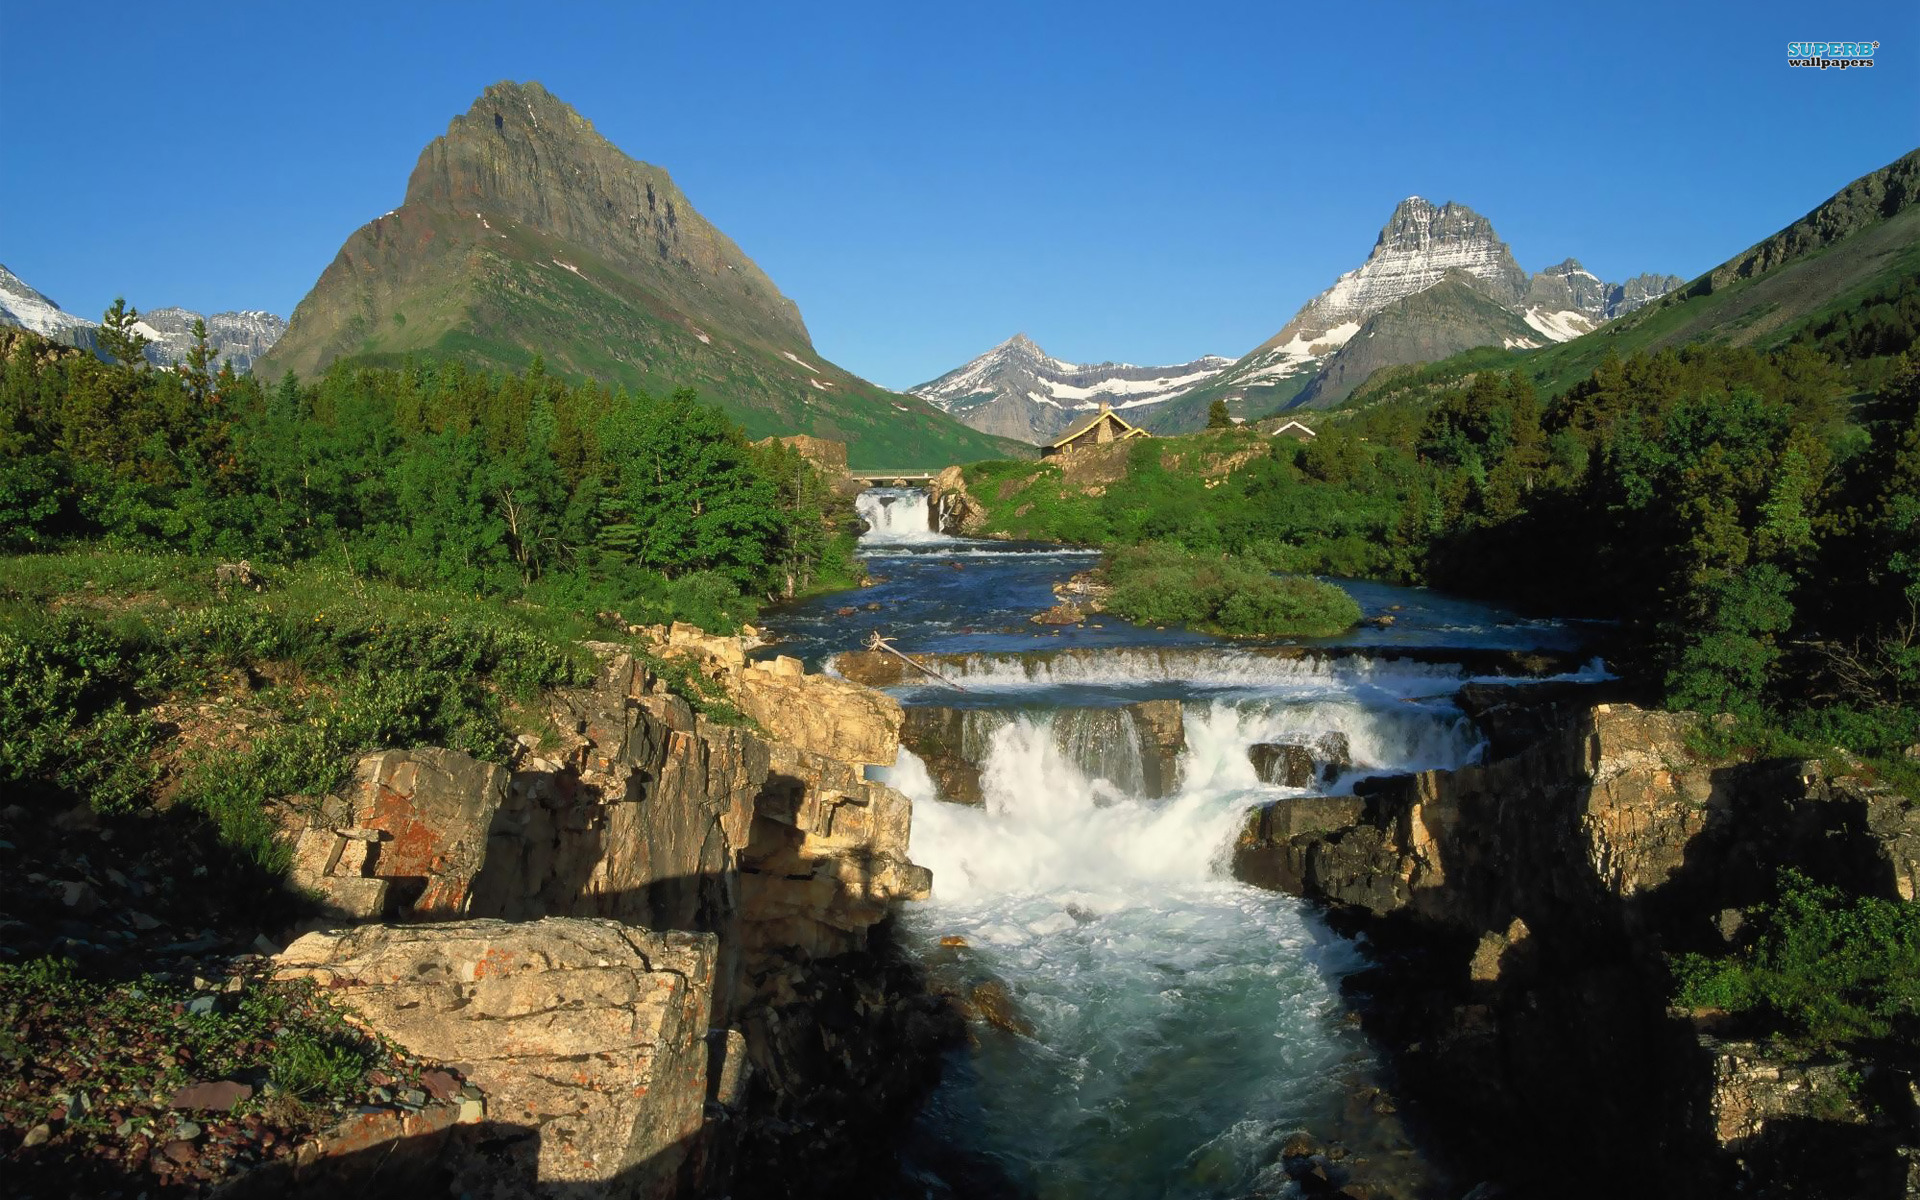 Glacier national park hd wallpapers full hd pictures - Glacier national park wallpaper ...